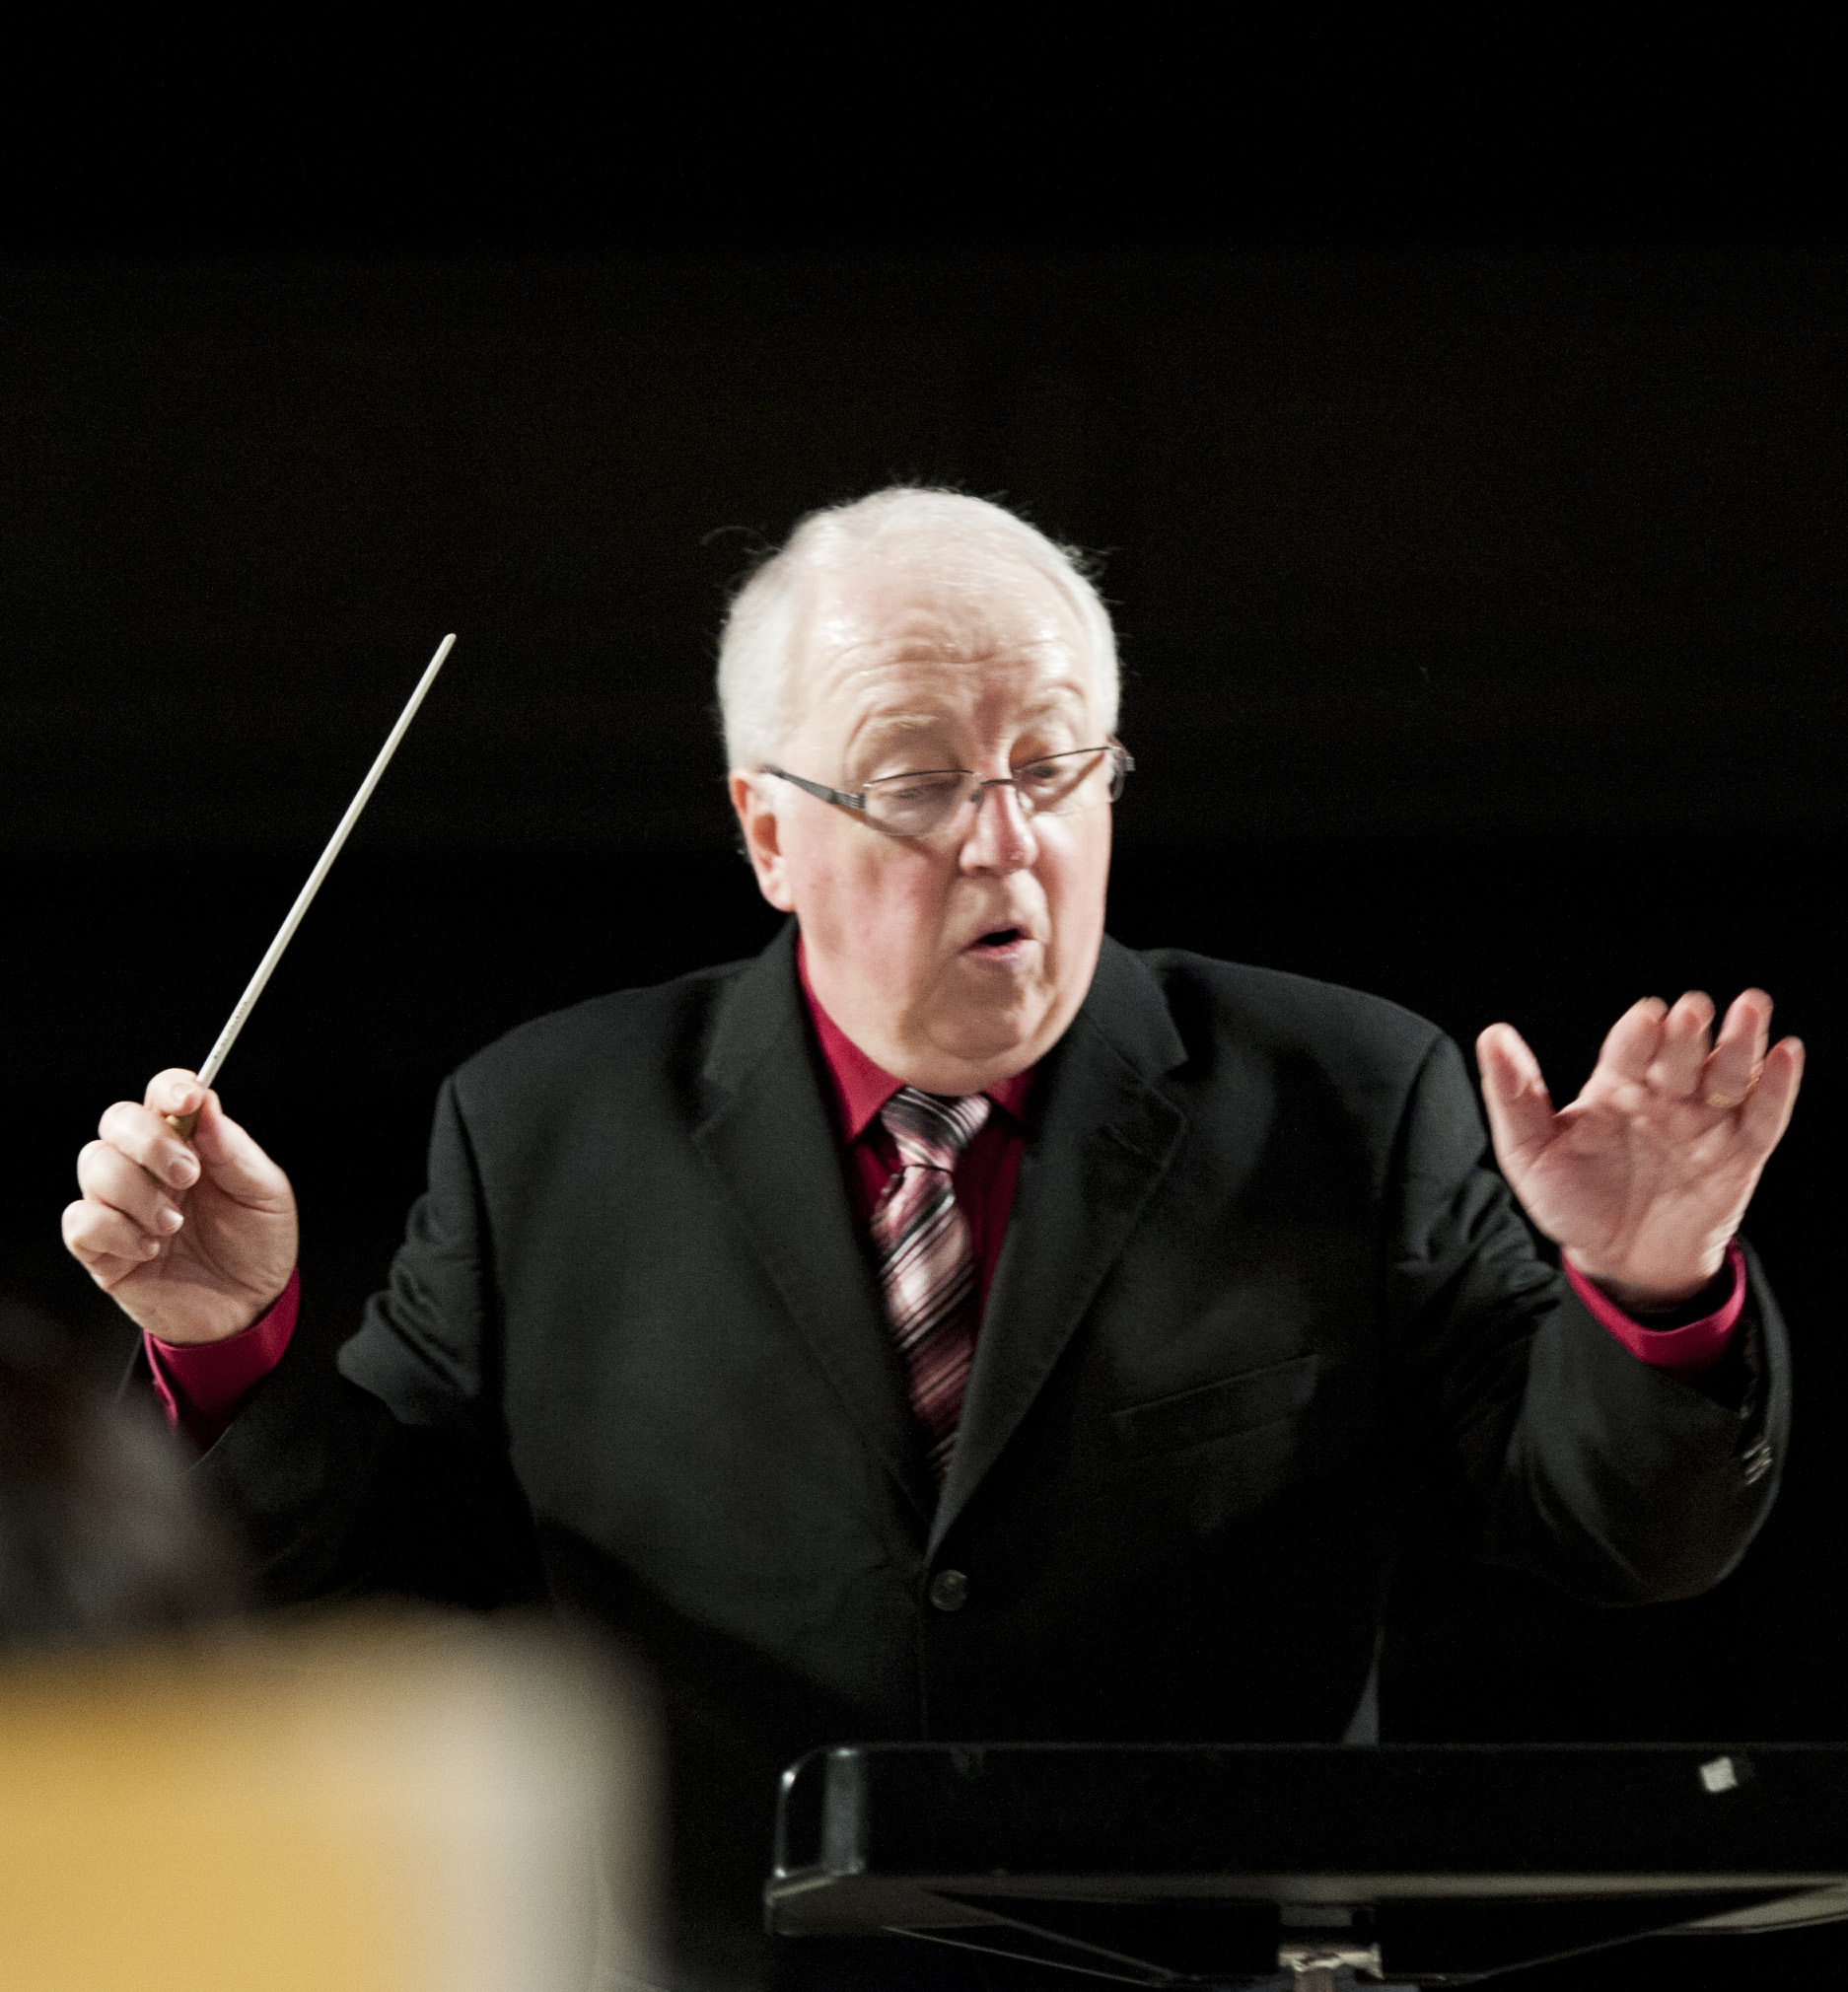 Daniel Gress photo, conducting